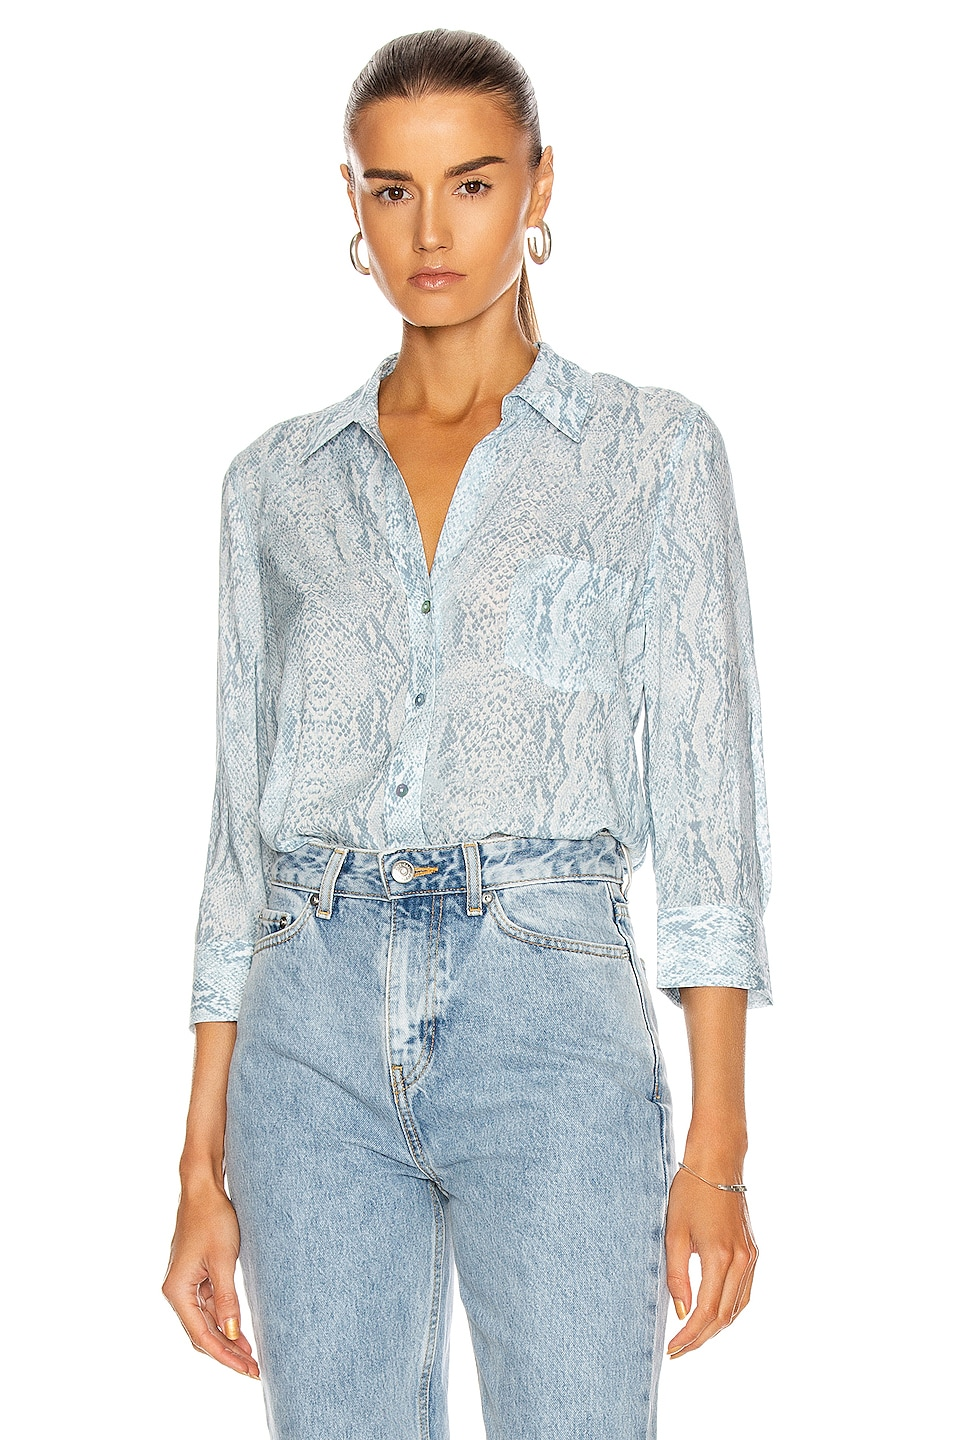 Image 1 of L'AGENCE Ryan 3/4 Sleeve Blouse in Cool Blue & Ivory